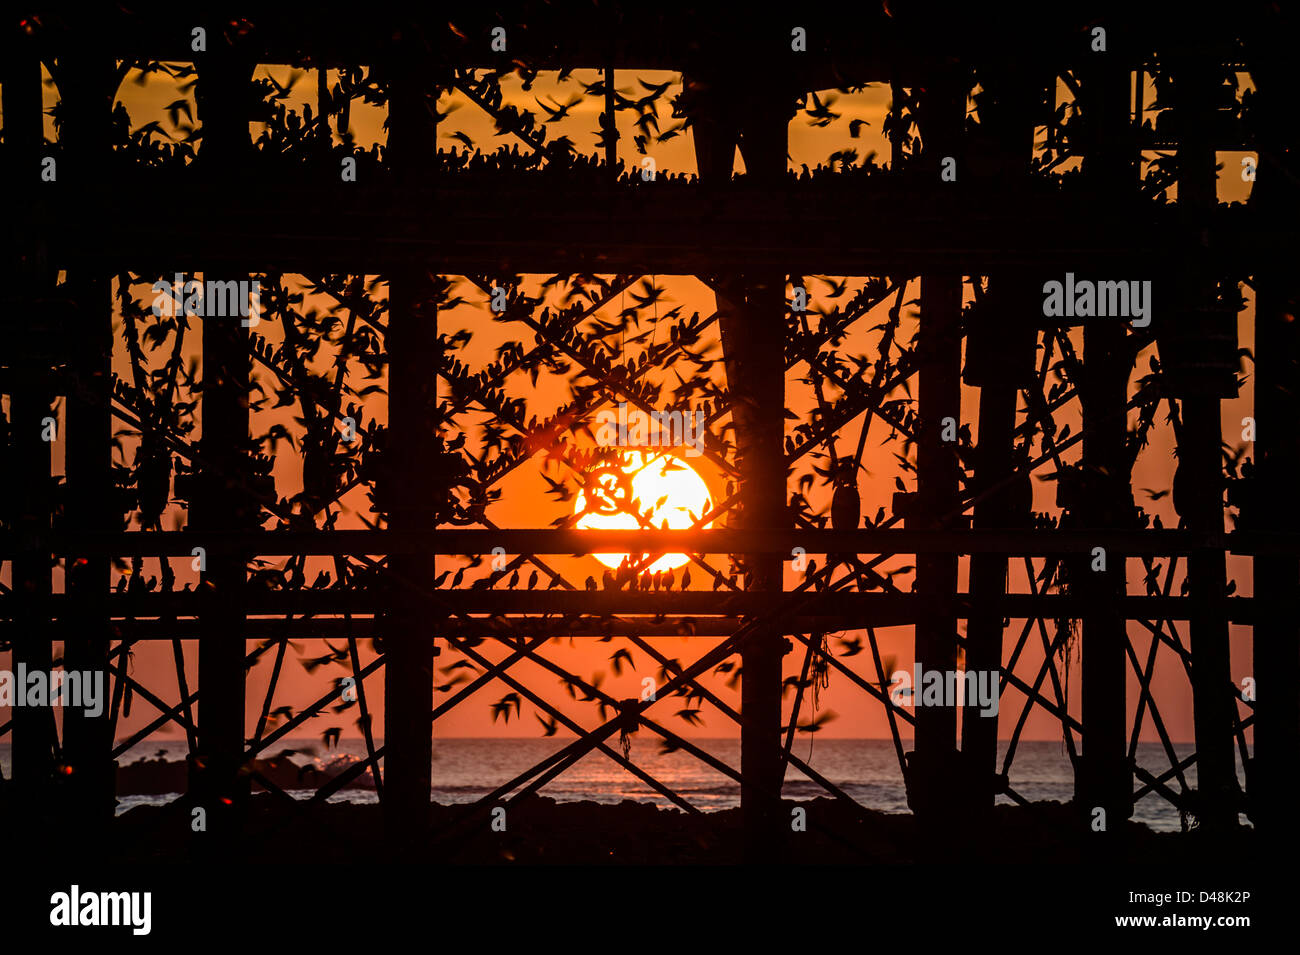 Aberystwyth Wales uk. A murmuration of starlings roosting on the cast iron legs of Aberystwyth pier at sunset - Stock Image